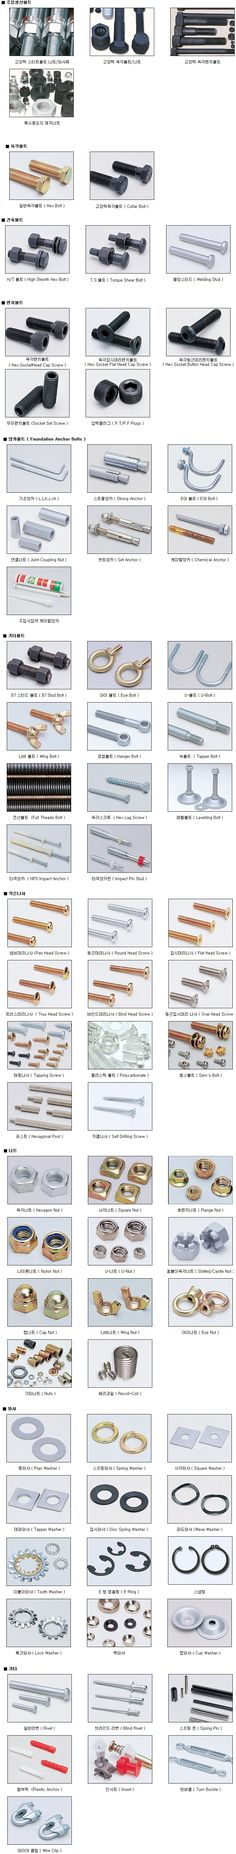 screws different types and their uses Types of screw and ways of identifying them  • has allen key type socket on head, uses hex screwdriver  screws - works with.